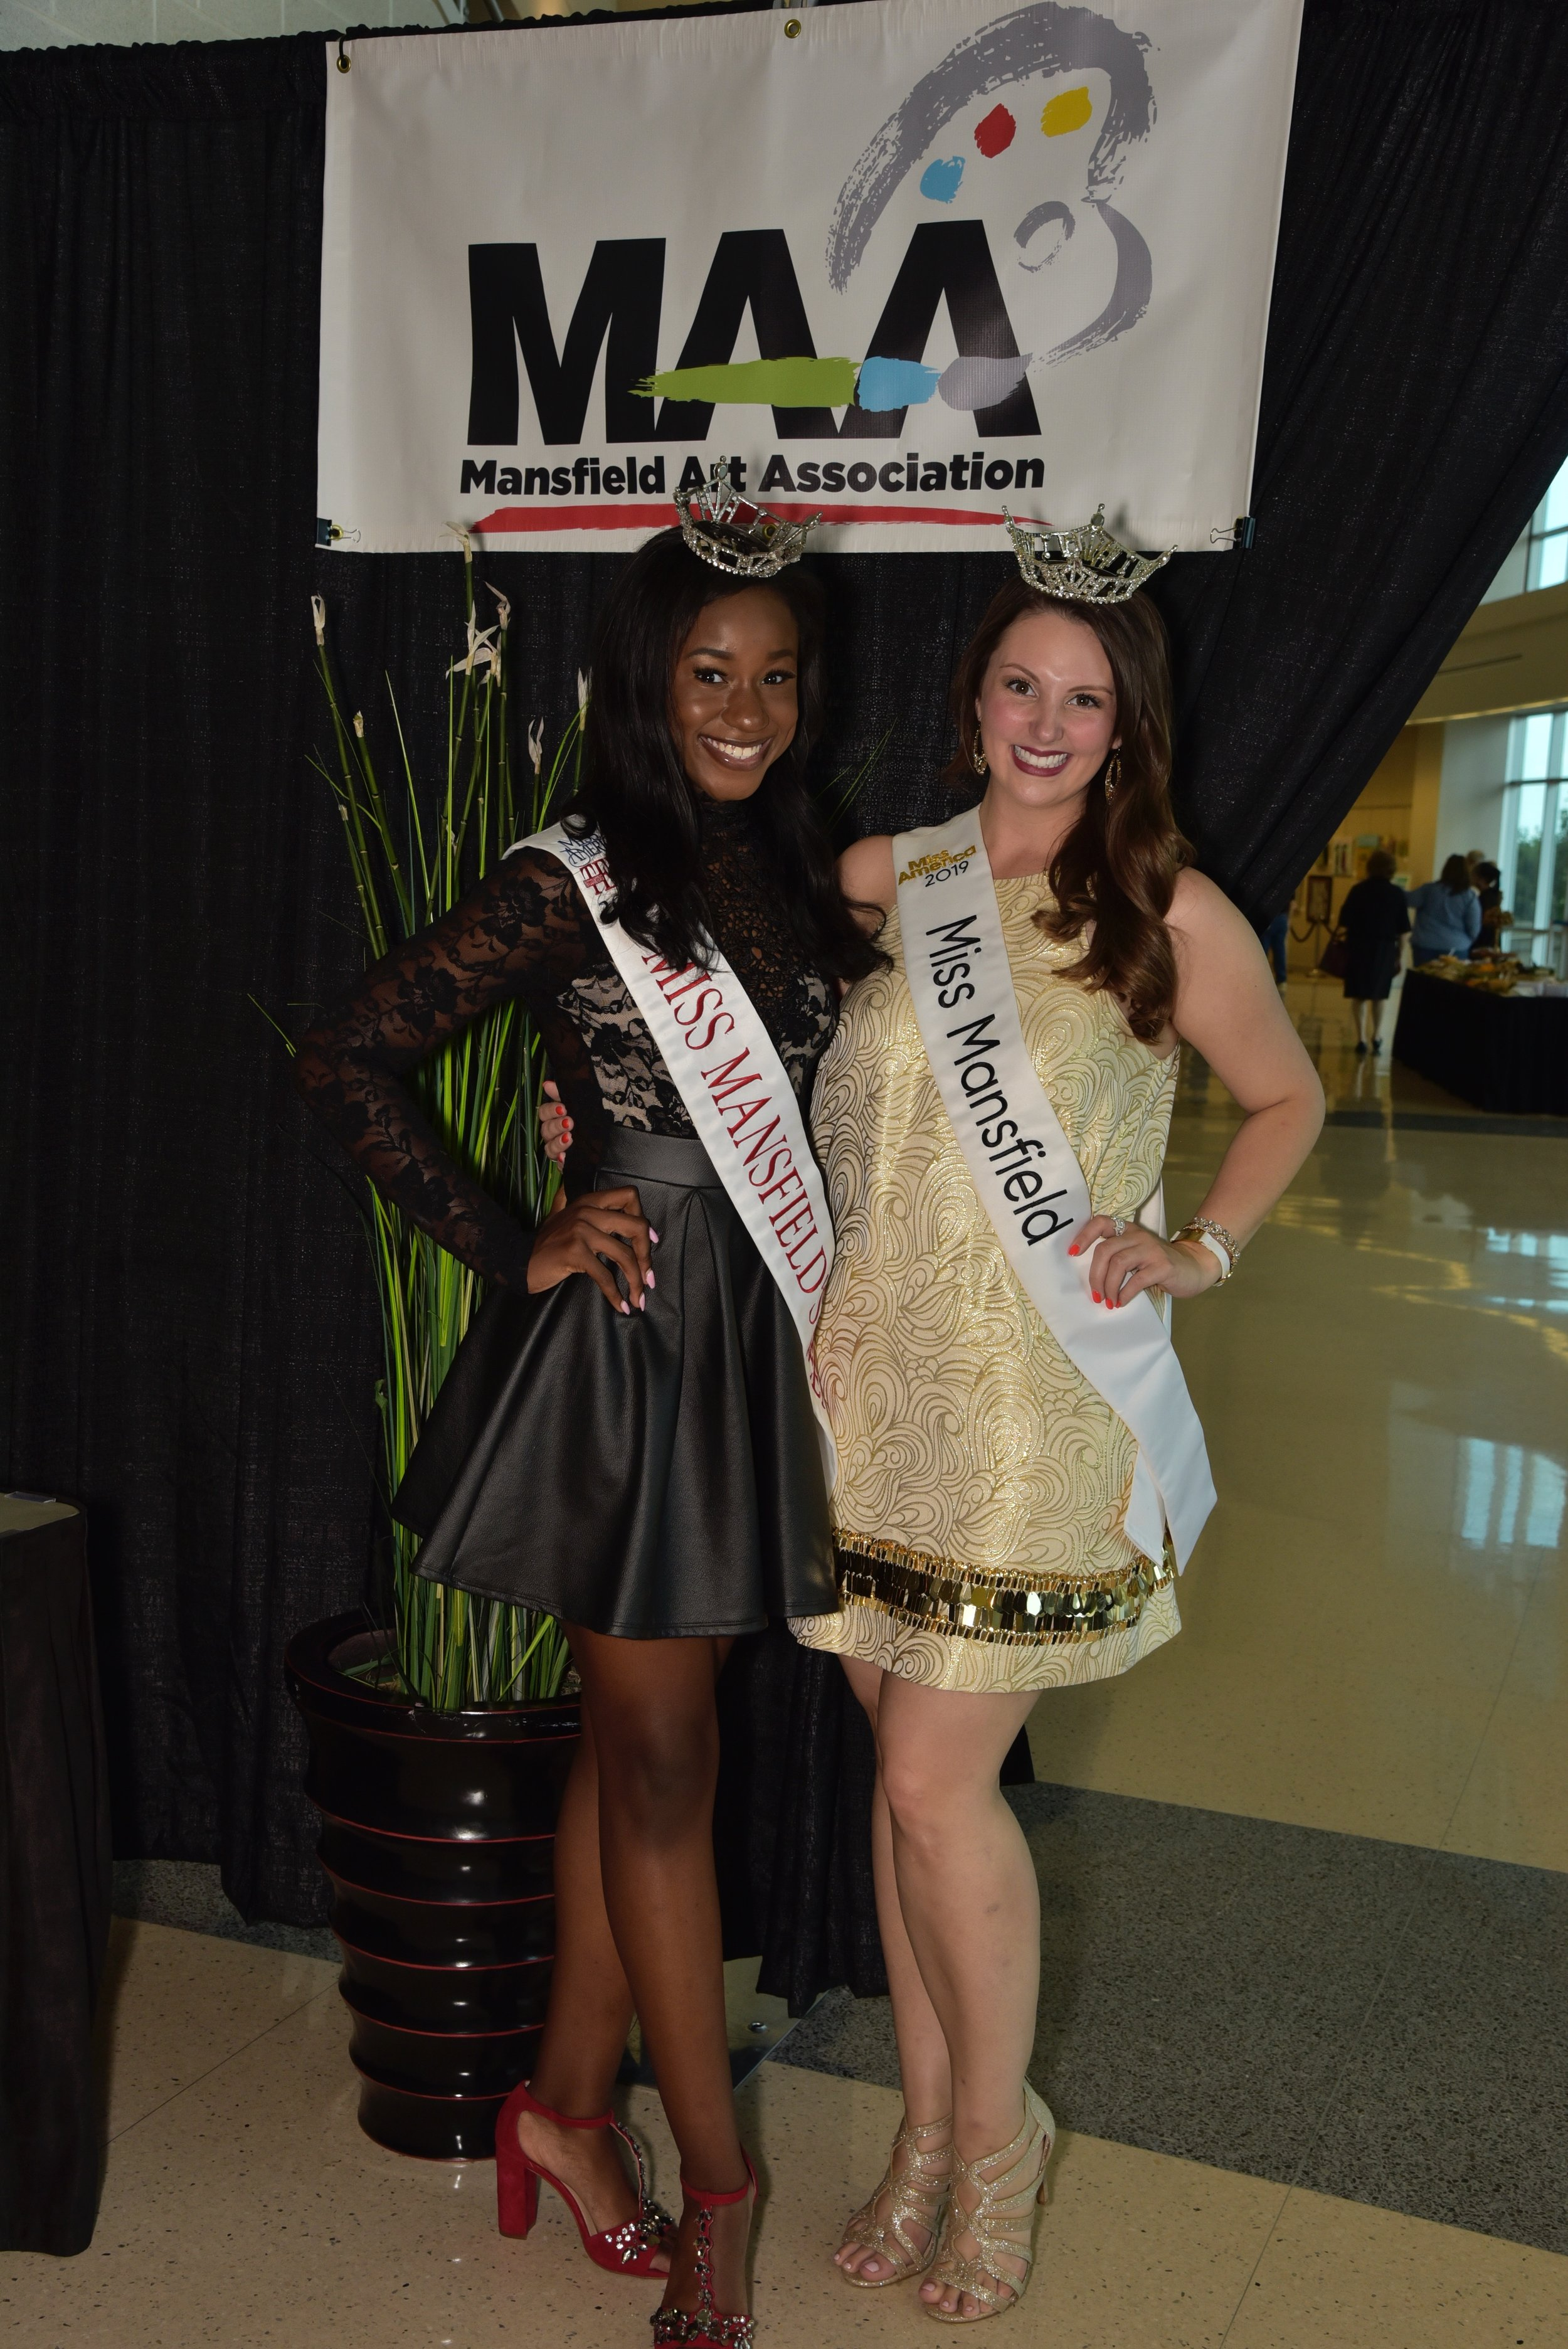 Miss Mansfield and Miss Teen Mansfield served as greeters for the event.